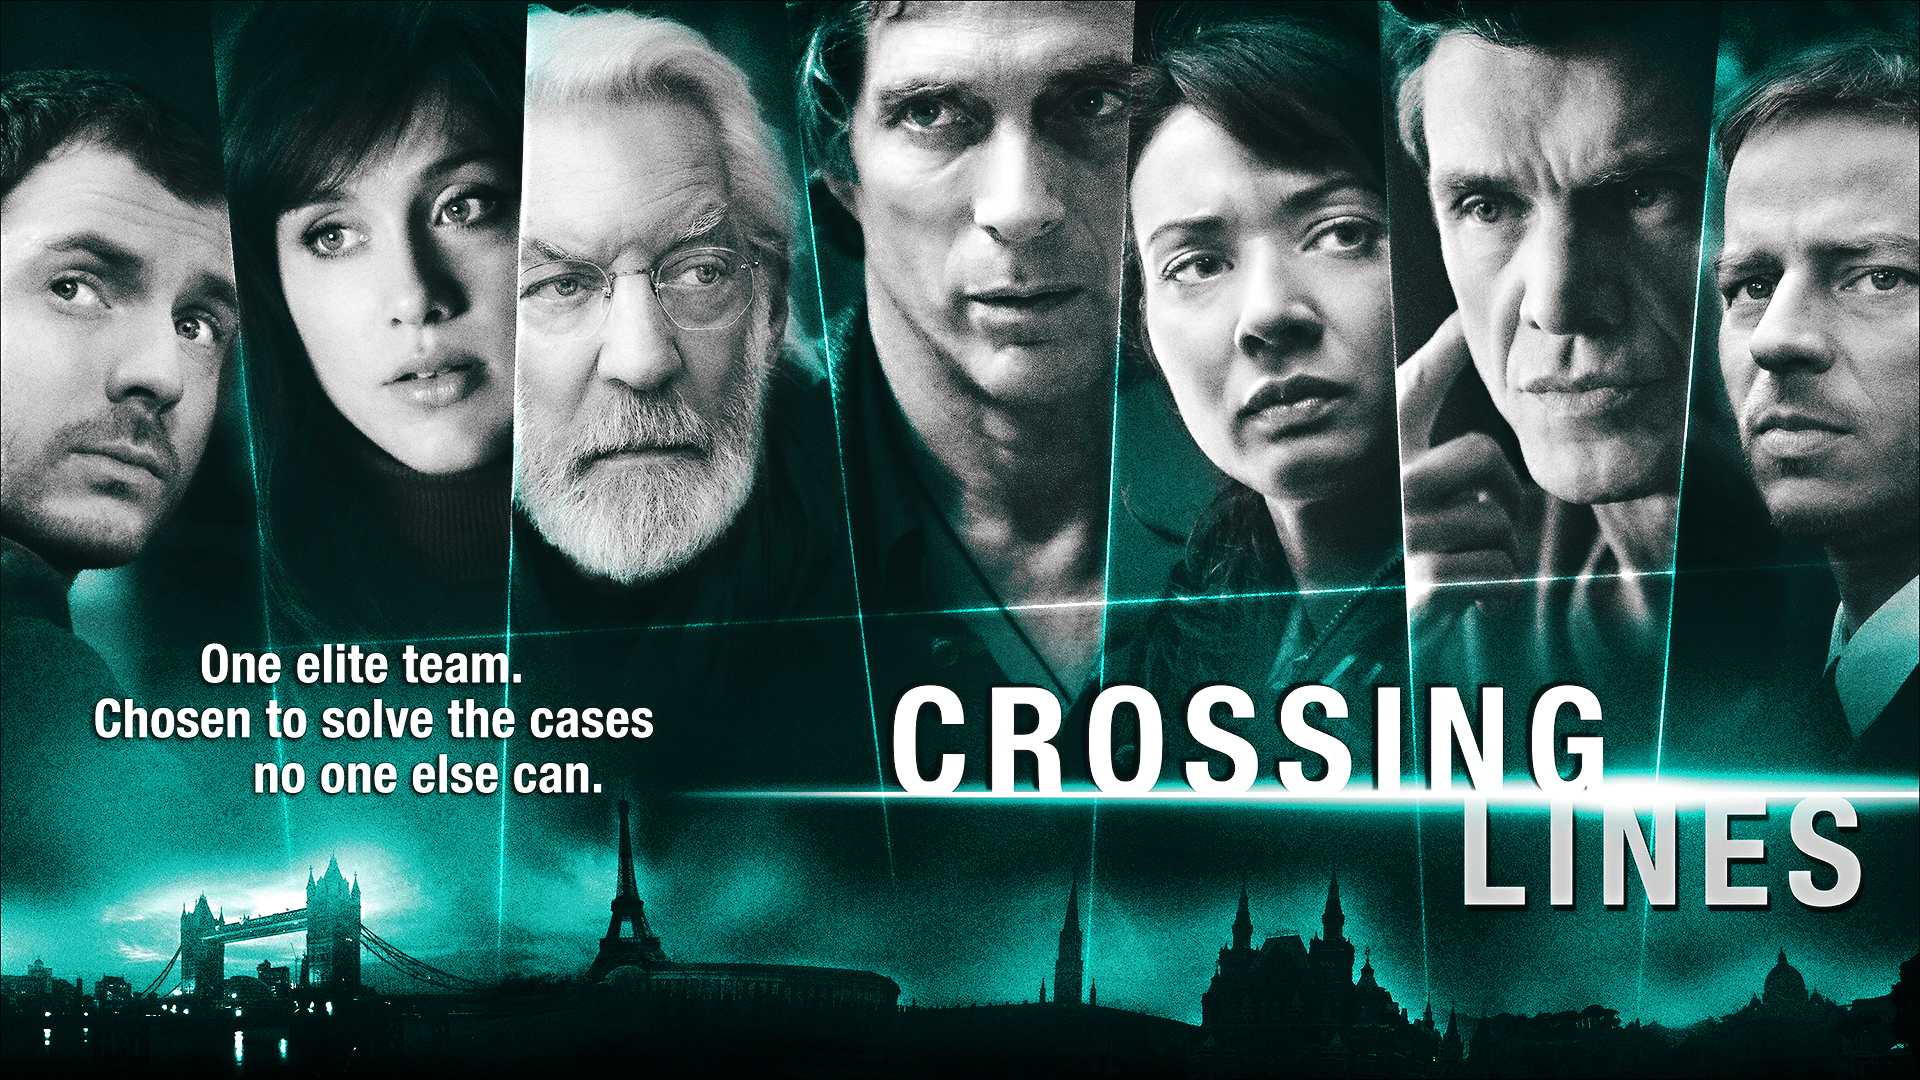 Crossed The Line Quotes: Crossing Lines Wallpaper